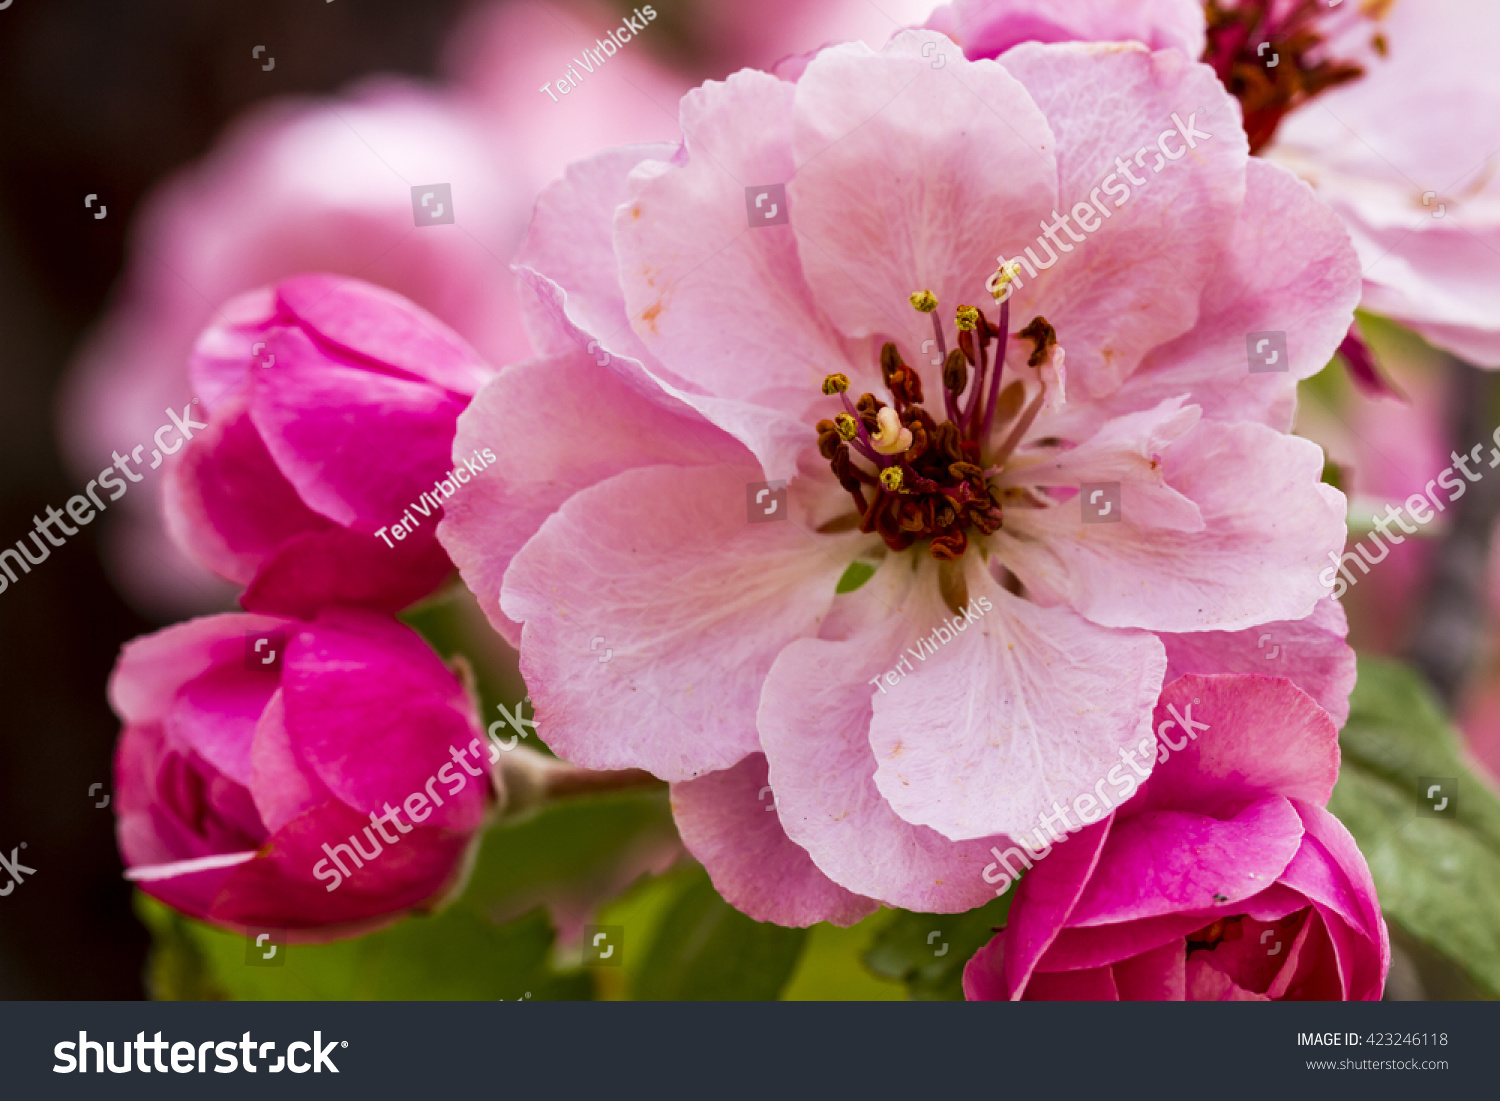 Close Up Of Light Pink Crab Apple Tree Bloom Surrounded By Unopened